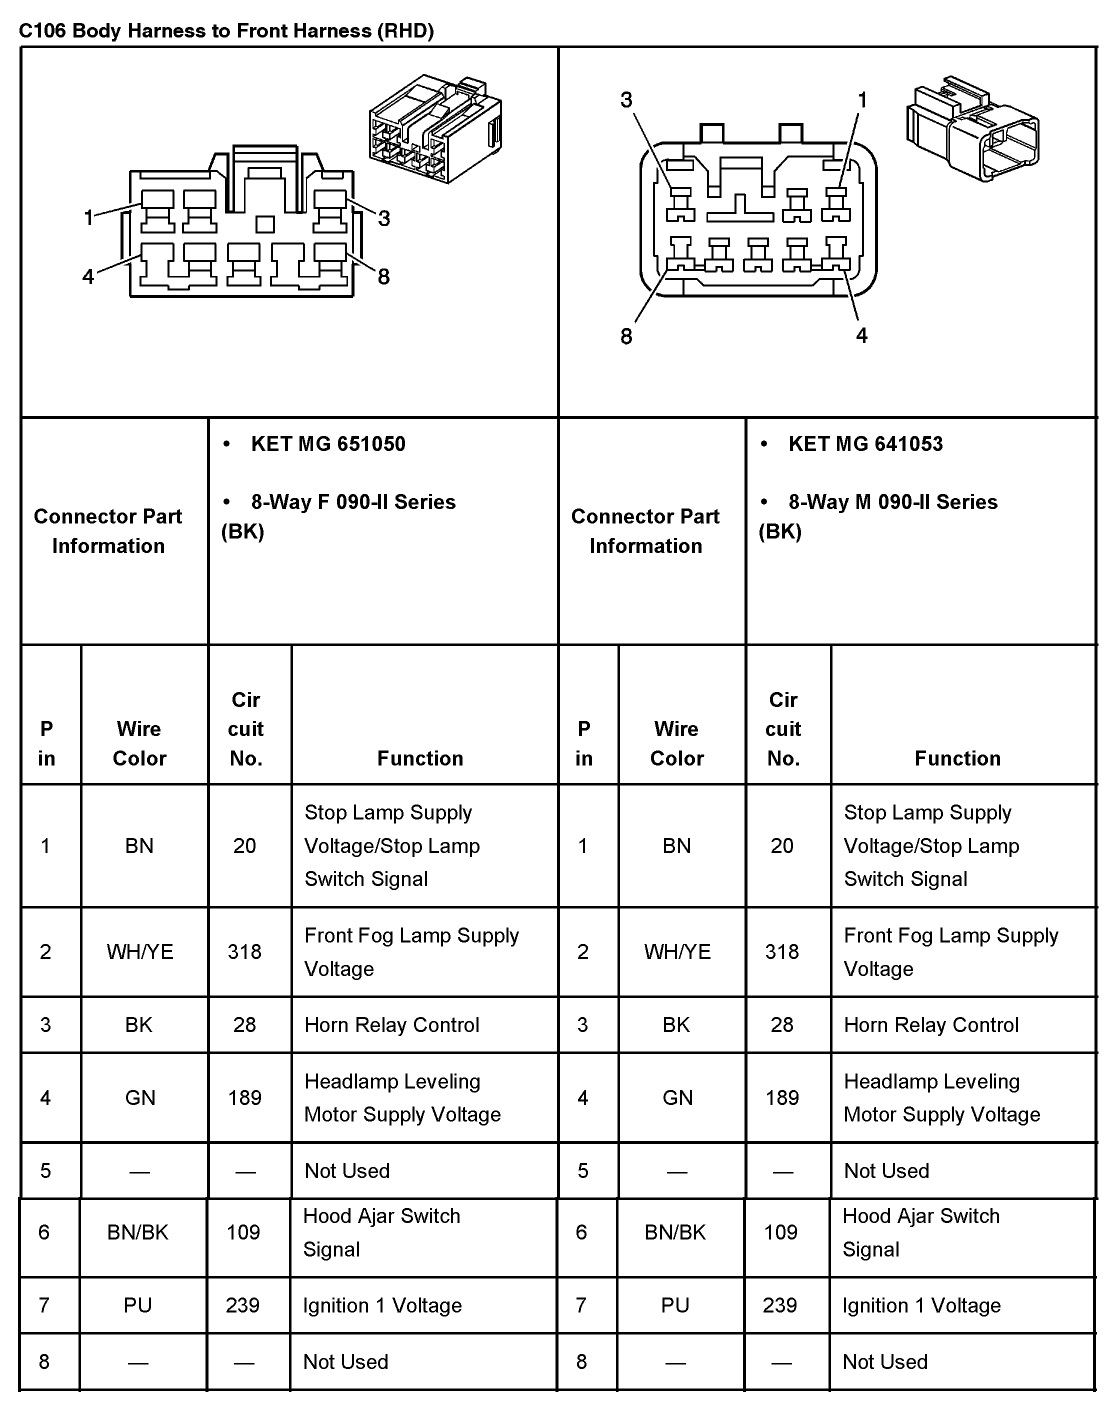 2009 chevy aveo fuse box diagram image details wiring diagrams on Chevy Volt Diagram 2007 Chevy Aveo Parts Diagram for 2005 aveo master connector list and diagrams 2007 chevy aveo fuse box diagram name conn3 jpg views 38178 size 275 0